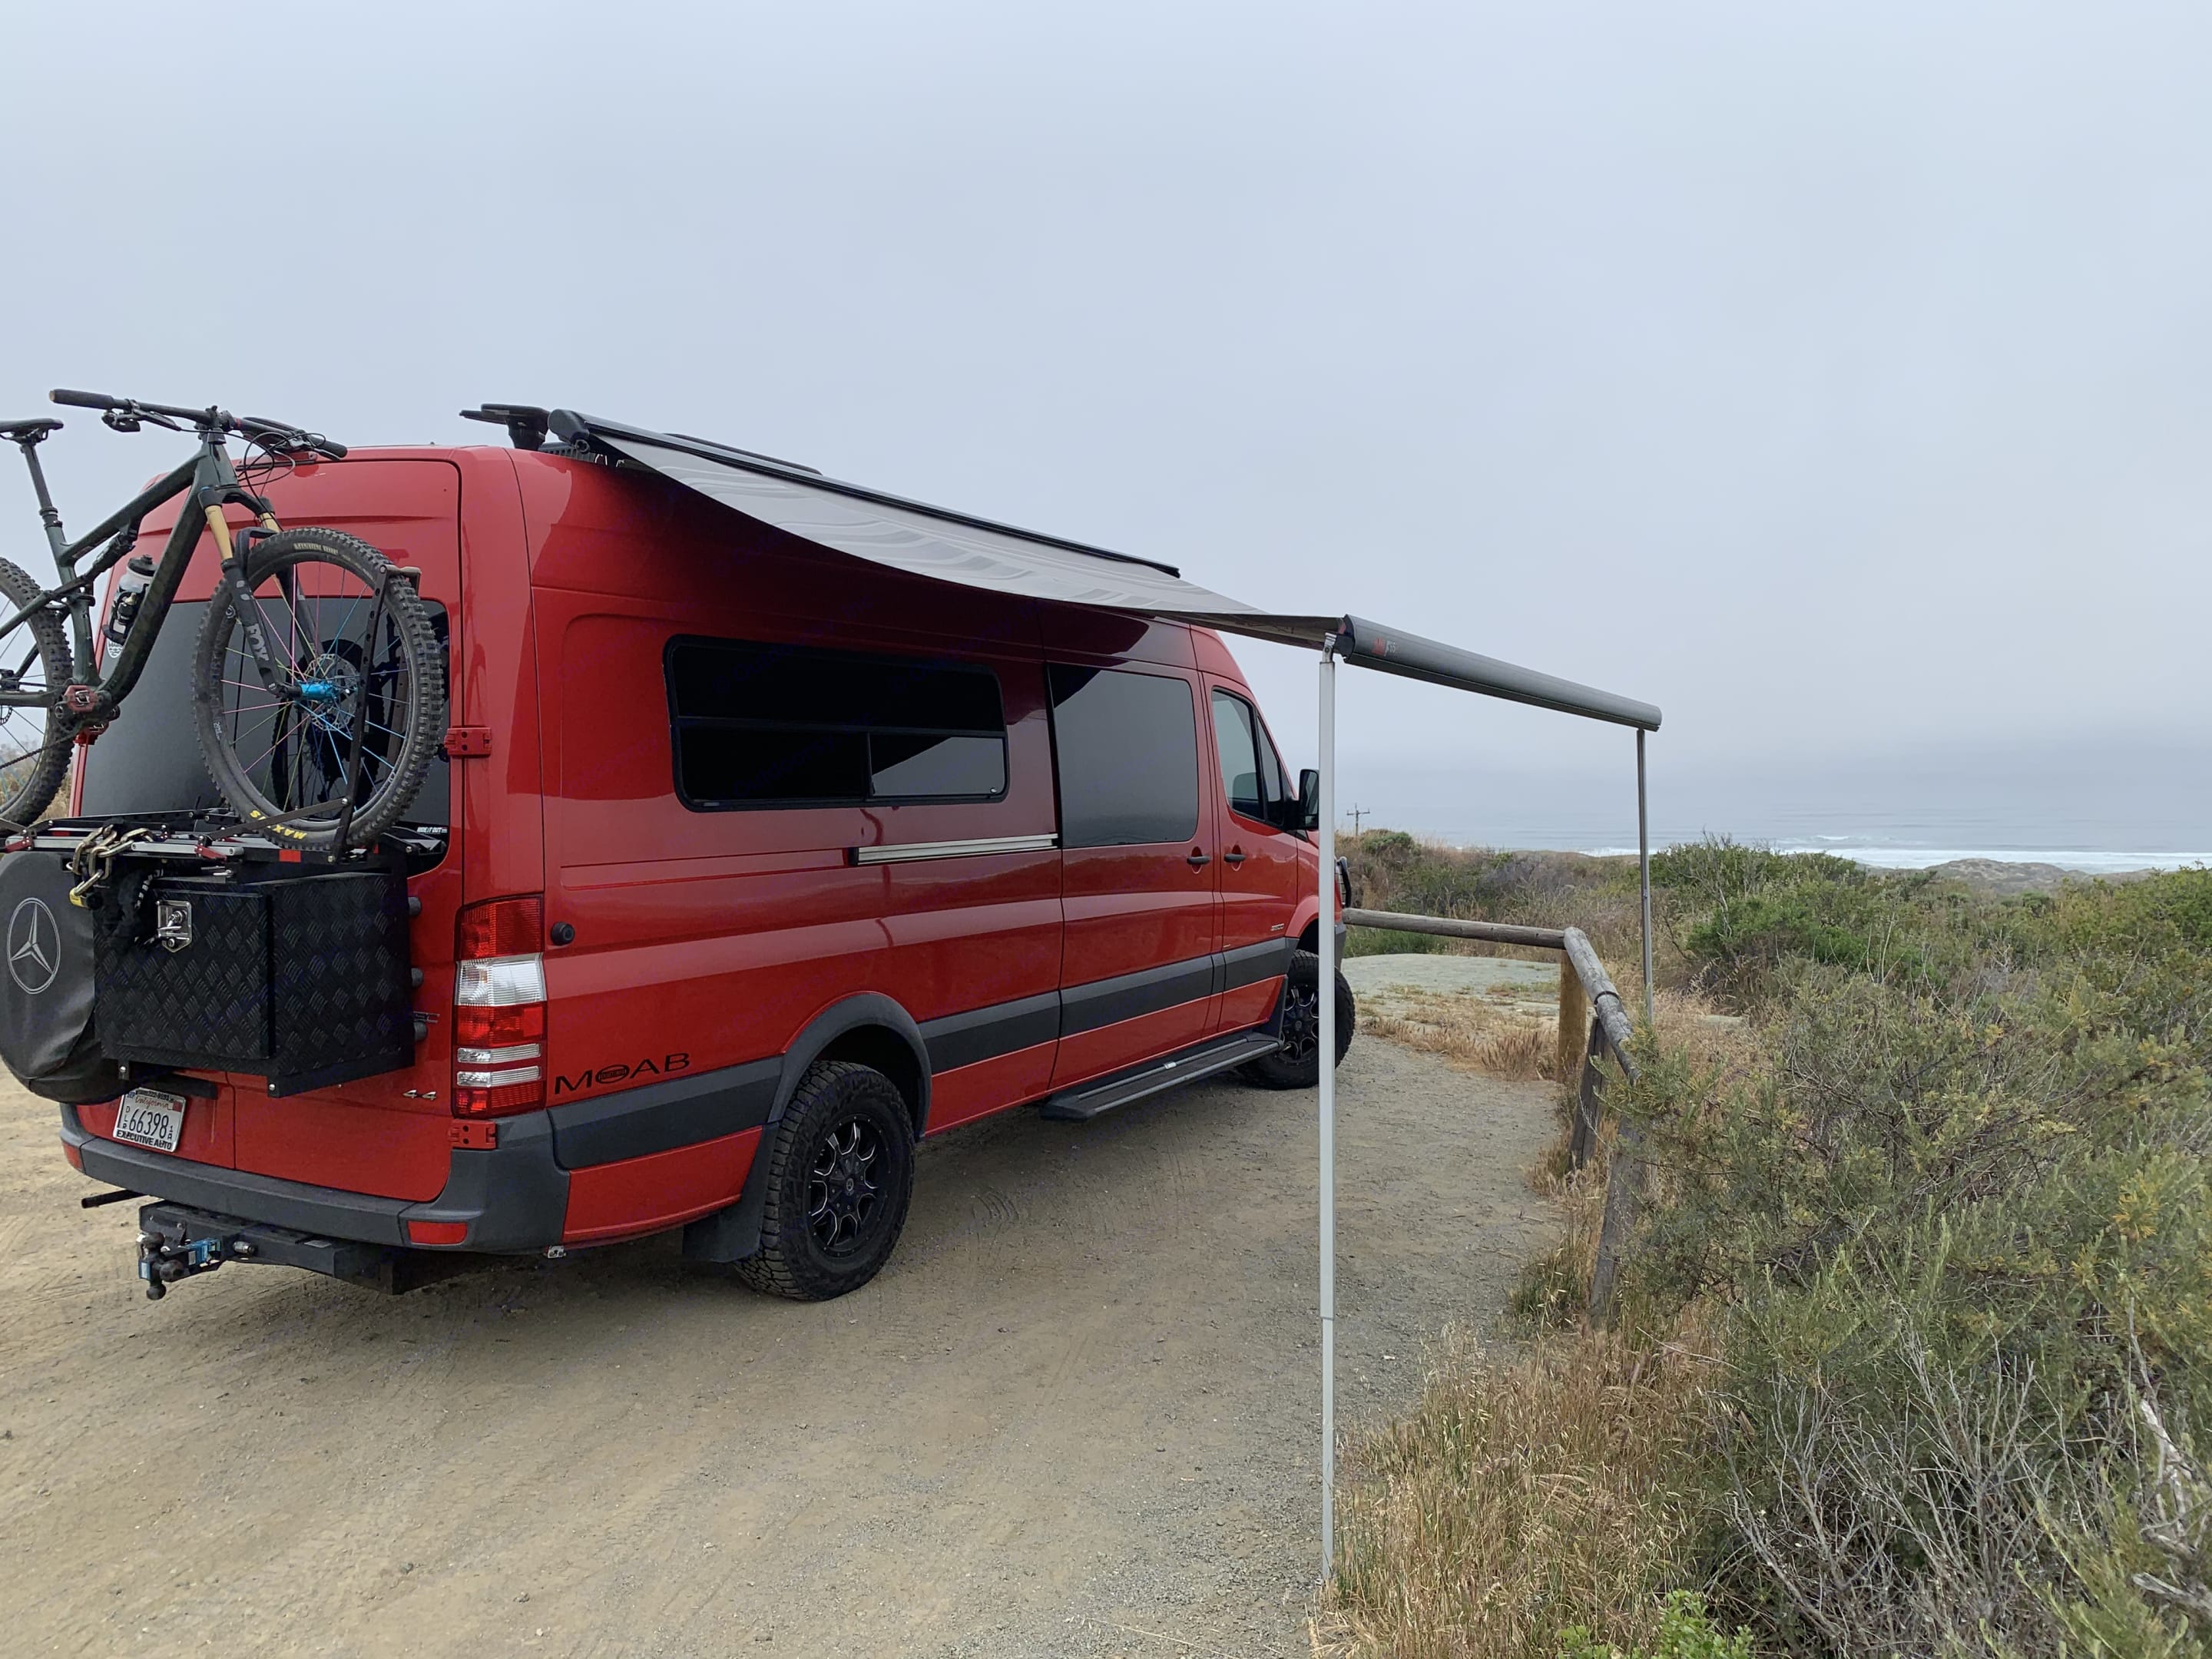 Awning extended... Bike rack in use. Mercedes-Benz Sprinter 2016